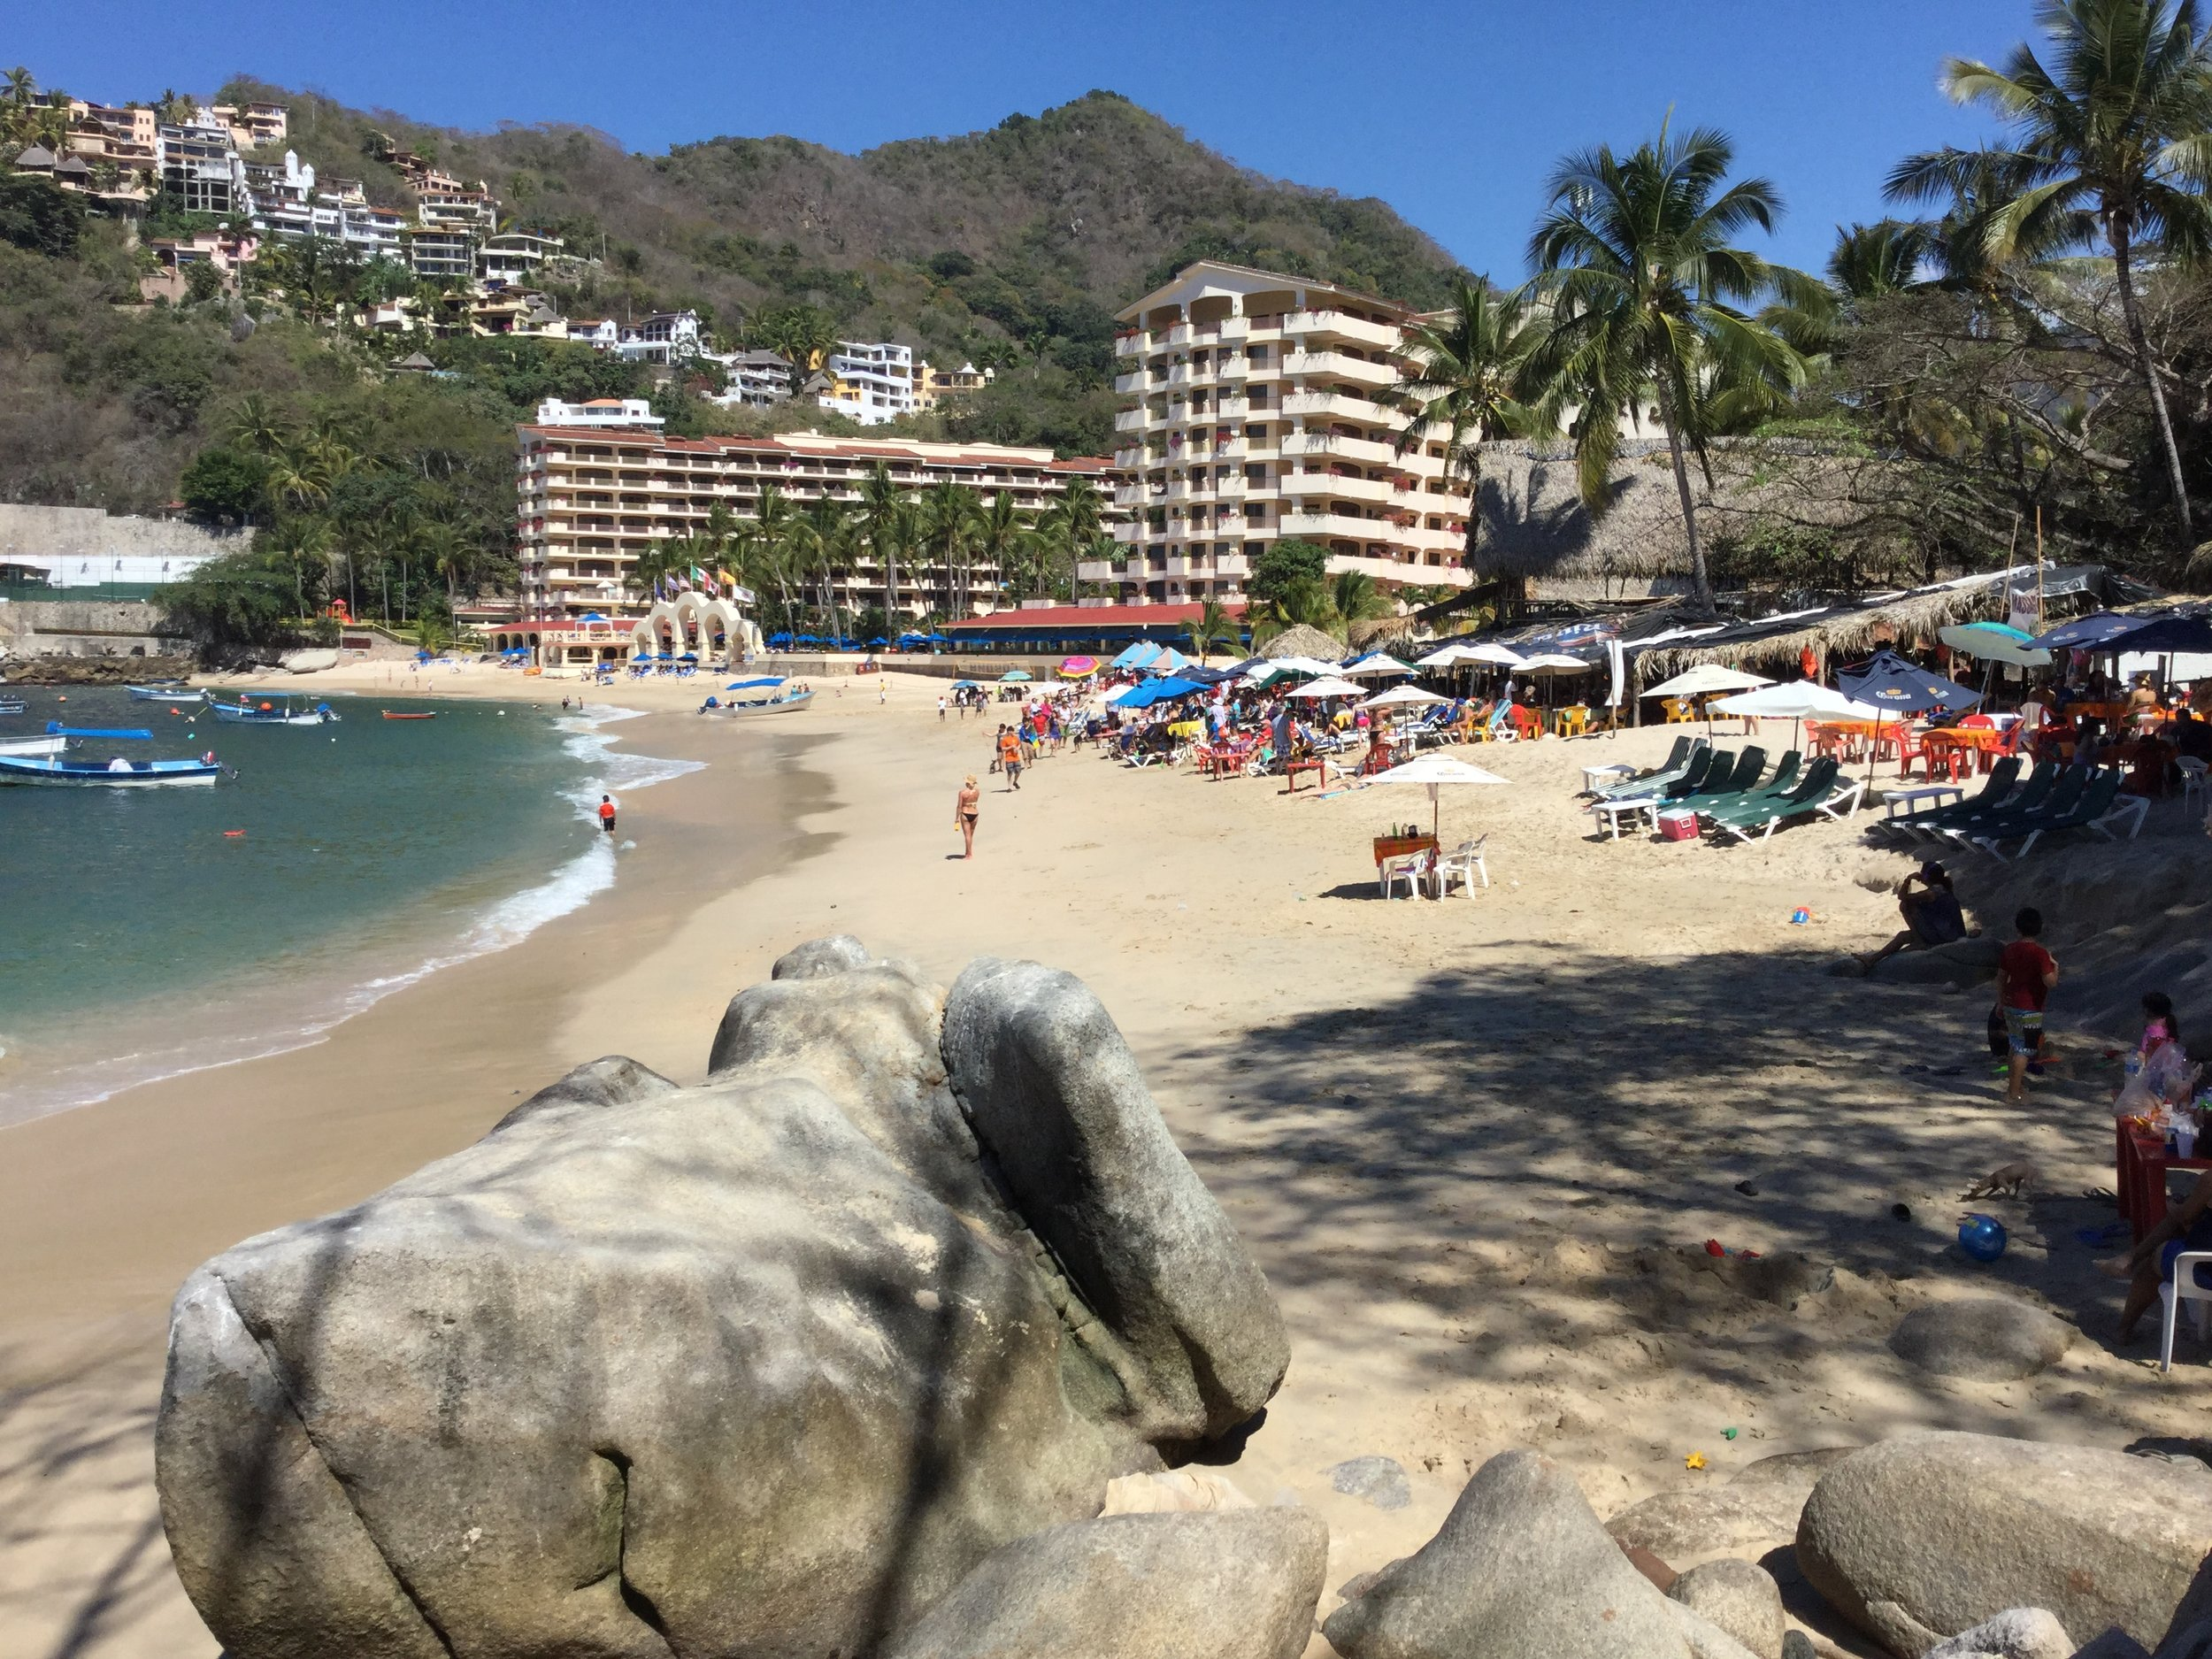 This is the Mismaloya beach 'where it all started'. John Huston movie Night of the Iguanas was filmed here. The Mismaloya Beach became popular before Puerto Vallarta tourism started in a big way.